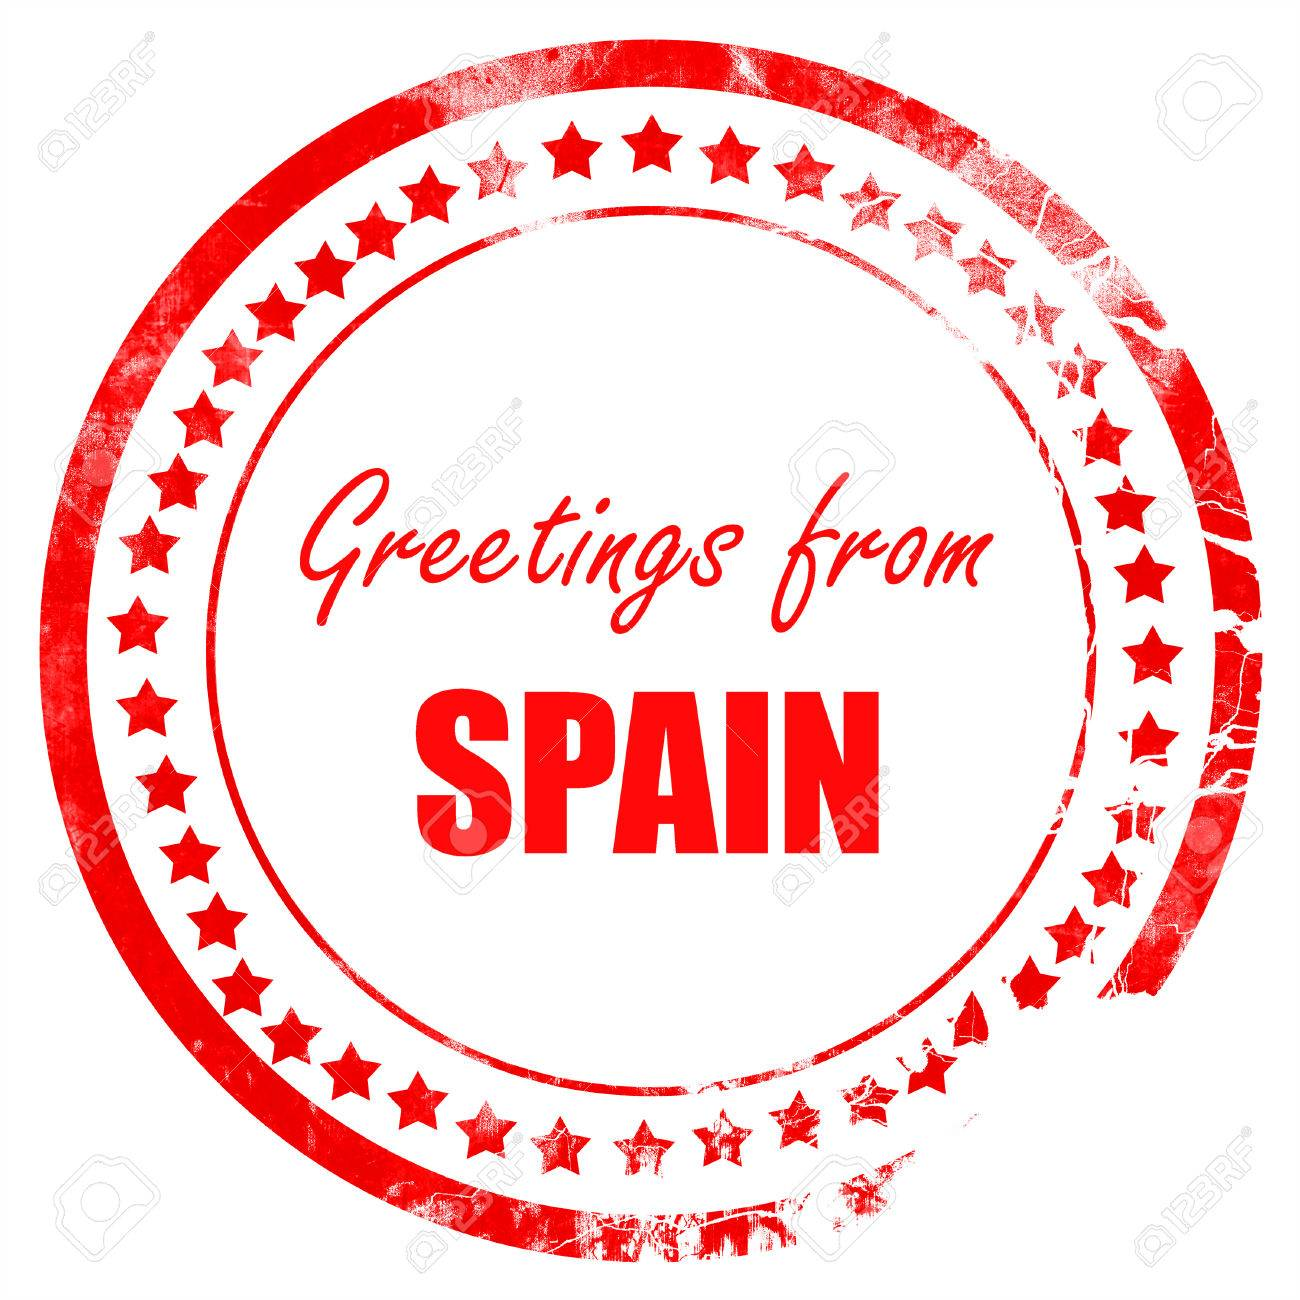 Greetings from spain card with some soft highlights stock photo greetings from spain card with some soft highlights stock photo 53838741 m4hsunfo